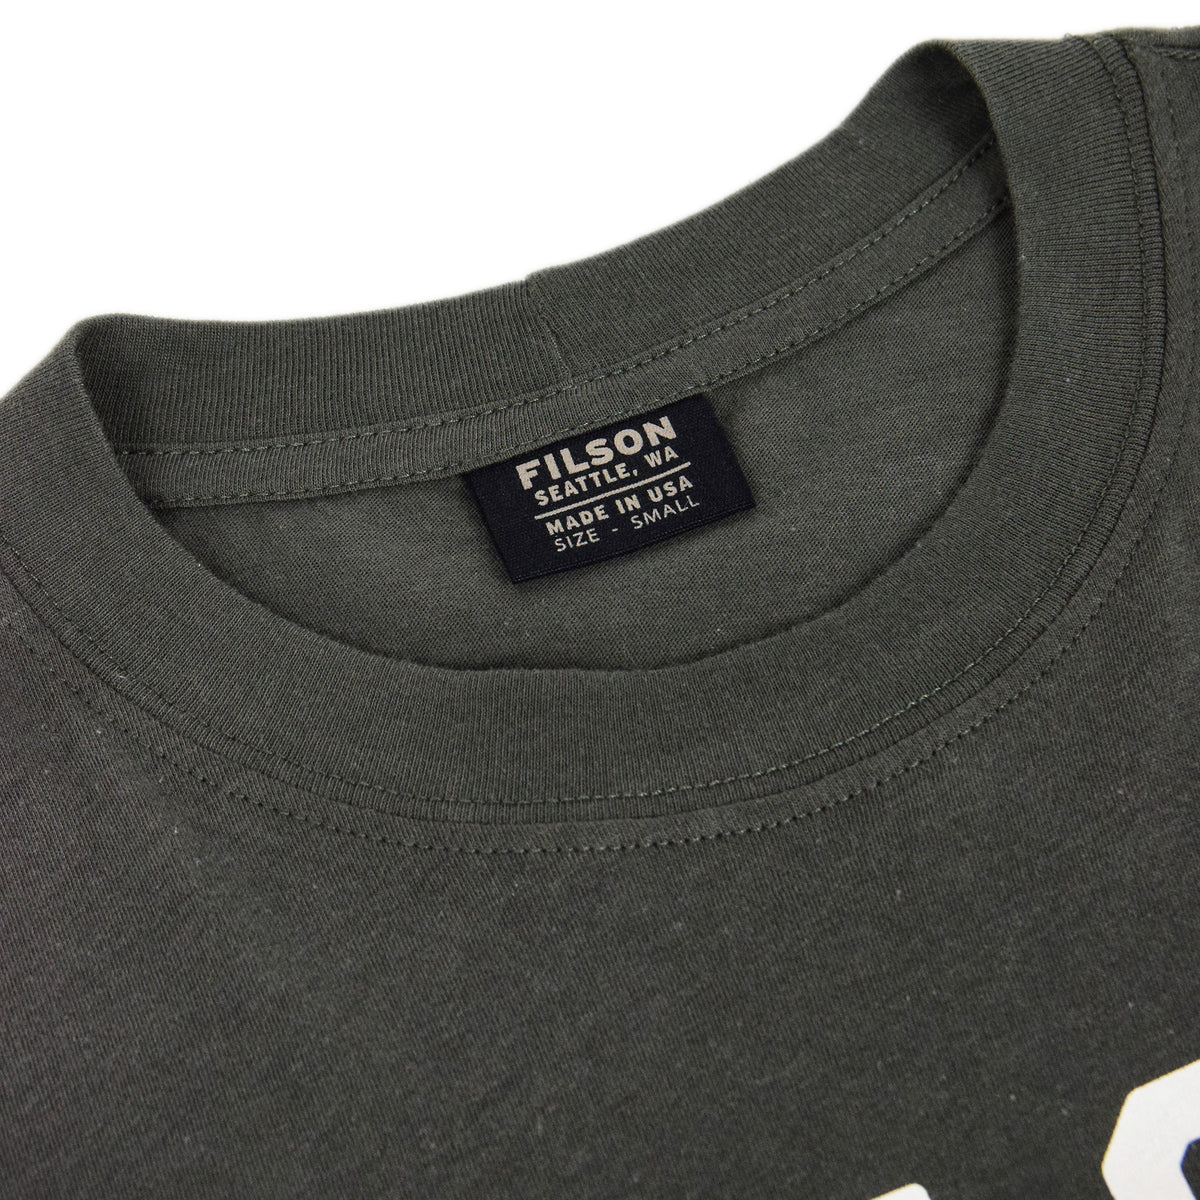 Filson Lightweight Graphic Outfitter T-Shirt Charcoal collar